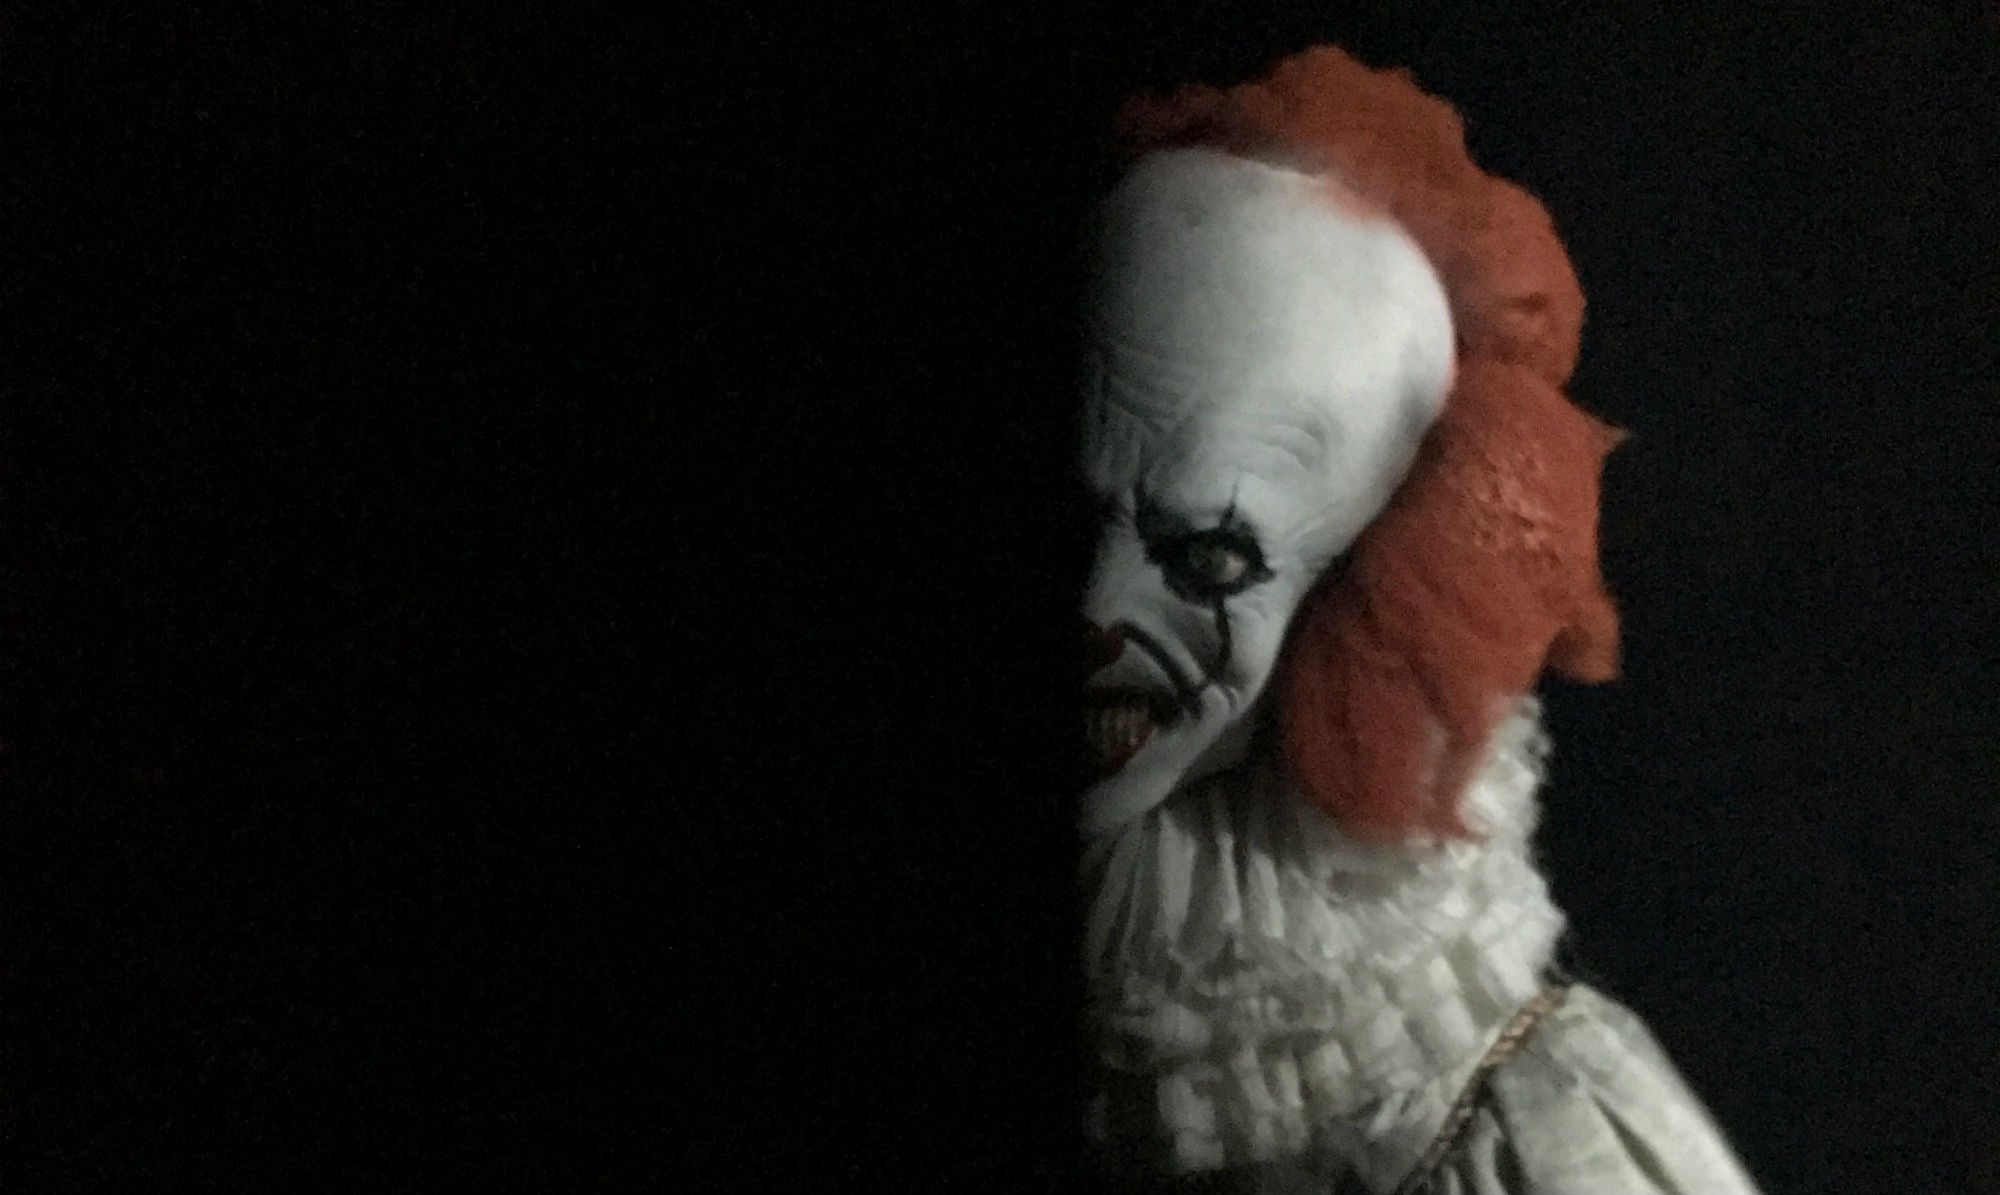 I Survived A Trip Through The Neibolt Street House From Stephen King's It